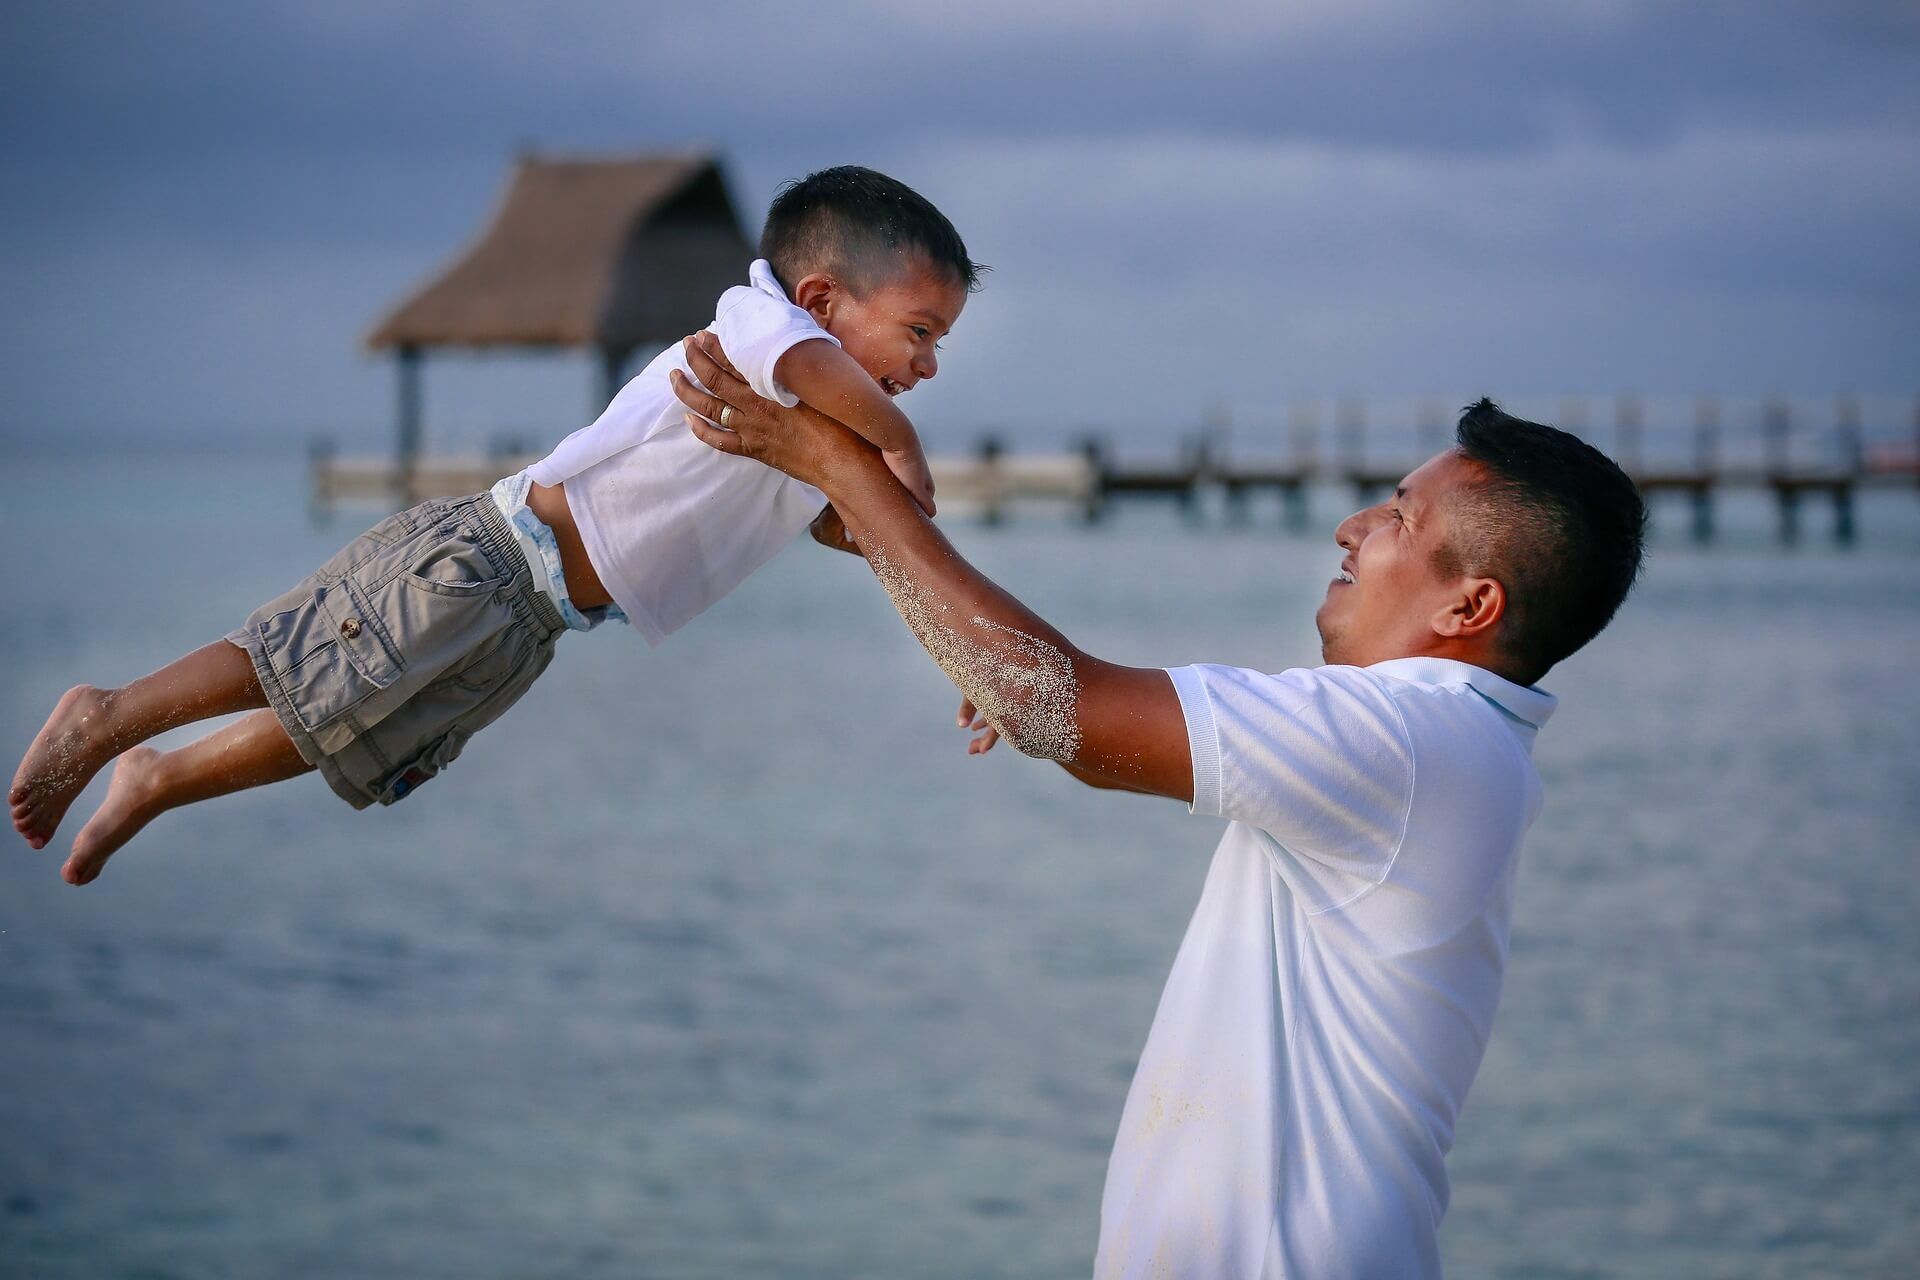 5 Valuable Tips for Being the Best Parent You Can Be